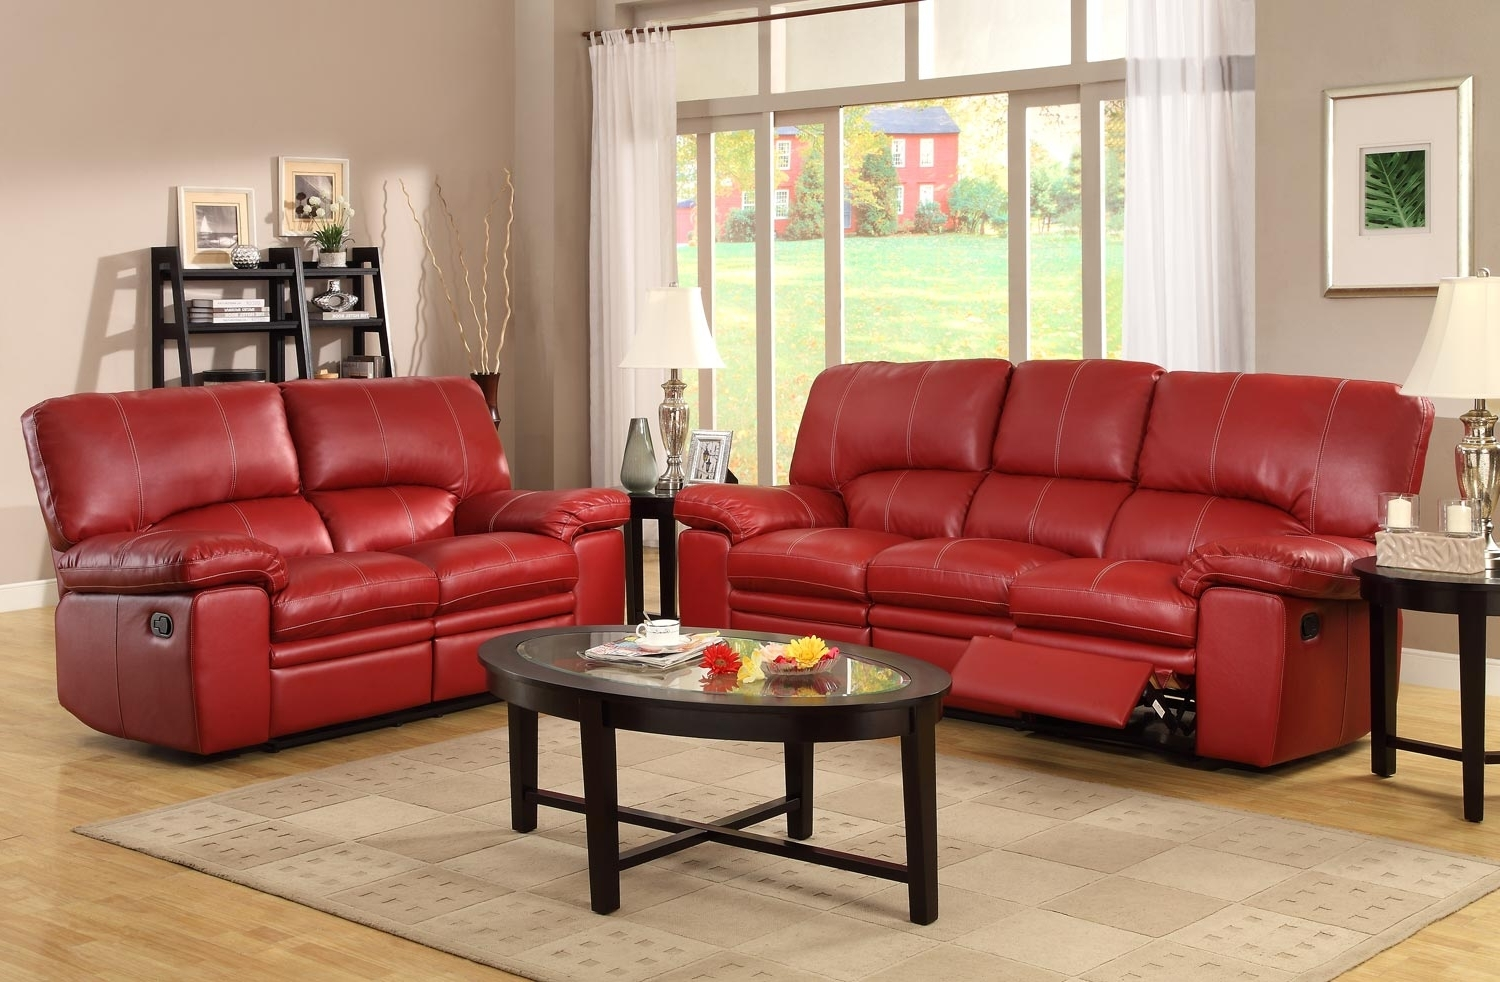 Red Leather Reclining Sofas And Loveseats Inside 2017 Simple Red Leather Tufted Backrest Loveseat With Shelter Armrest (View 4 of 15)